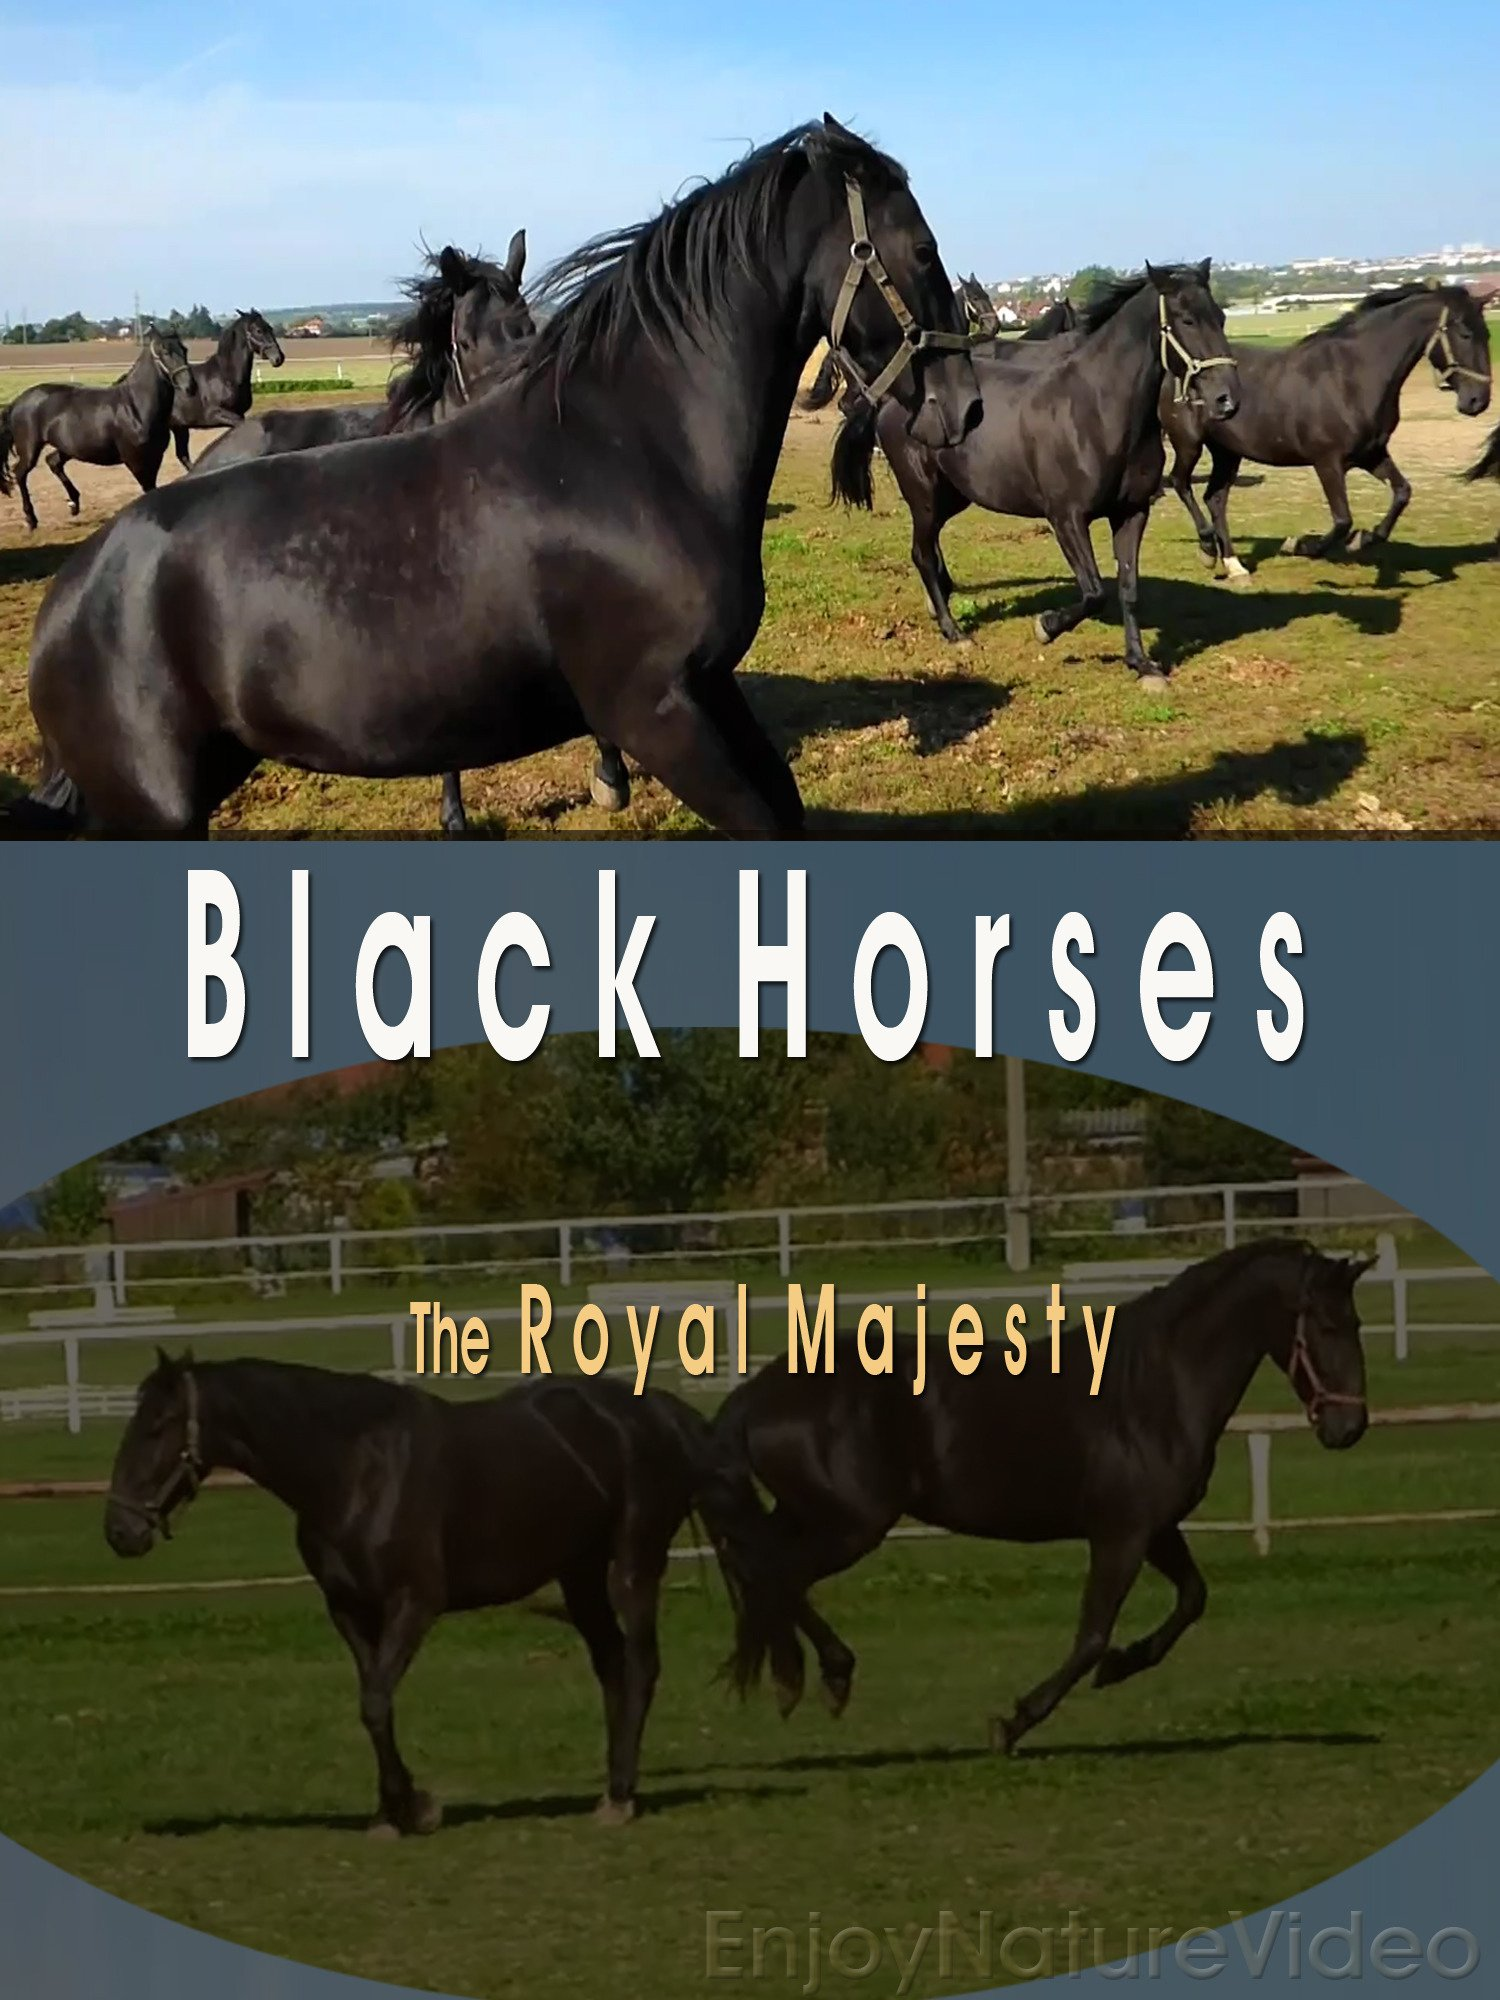 Black Horses. The Royal Majesty